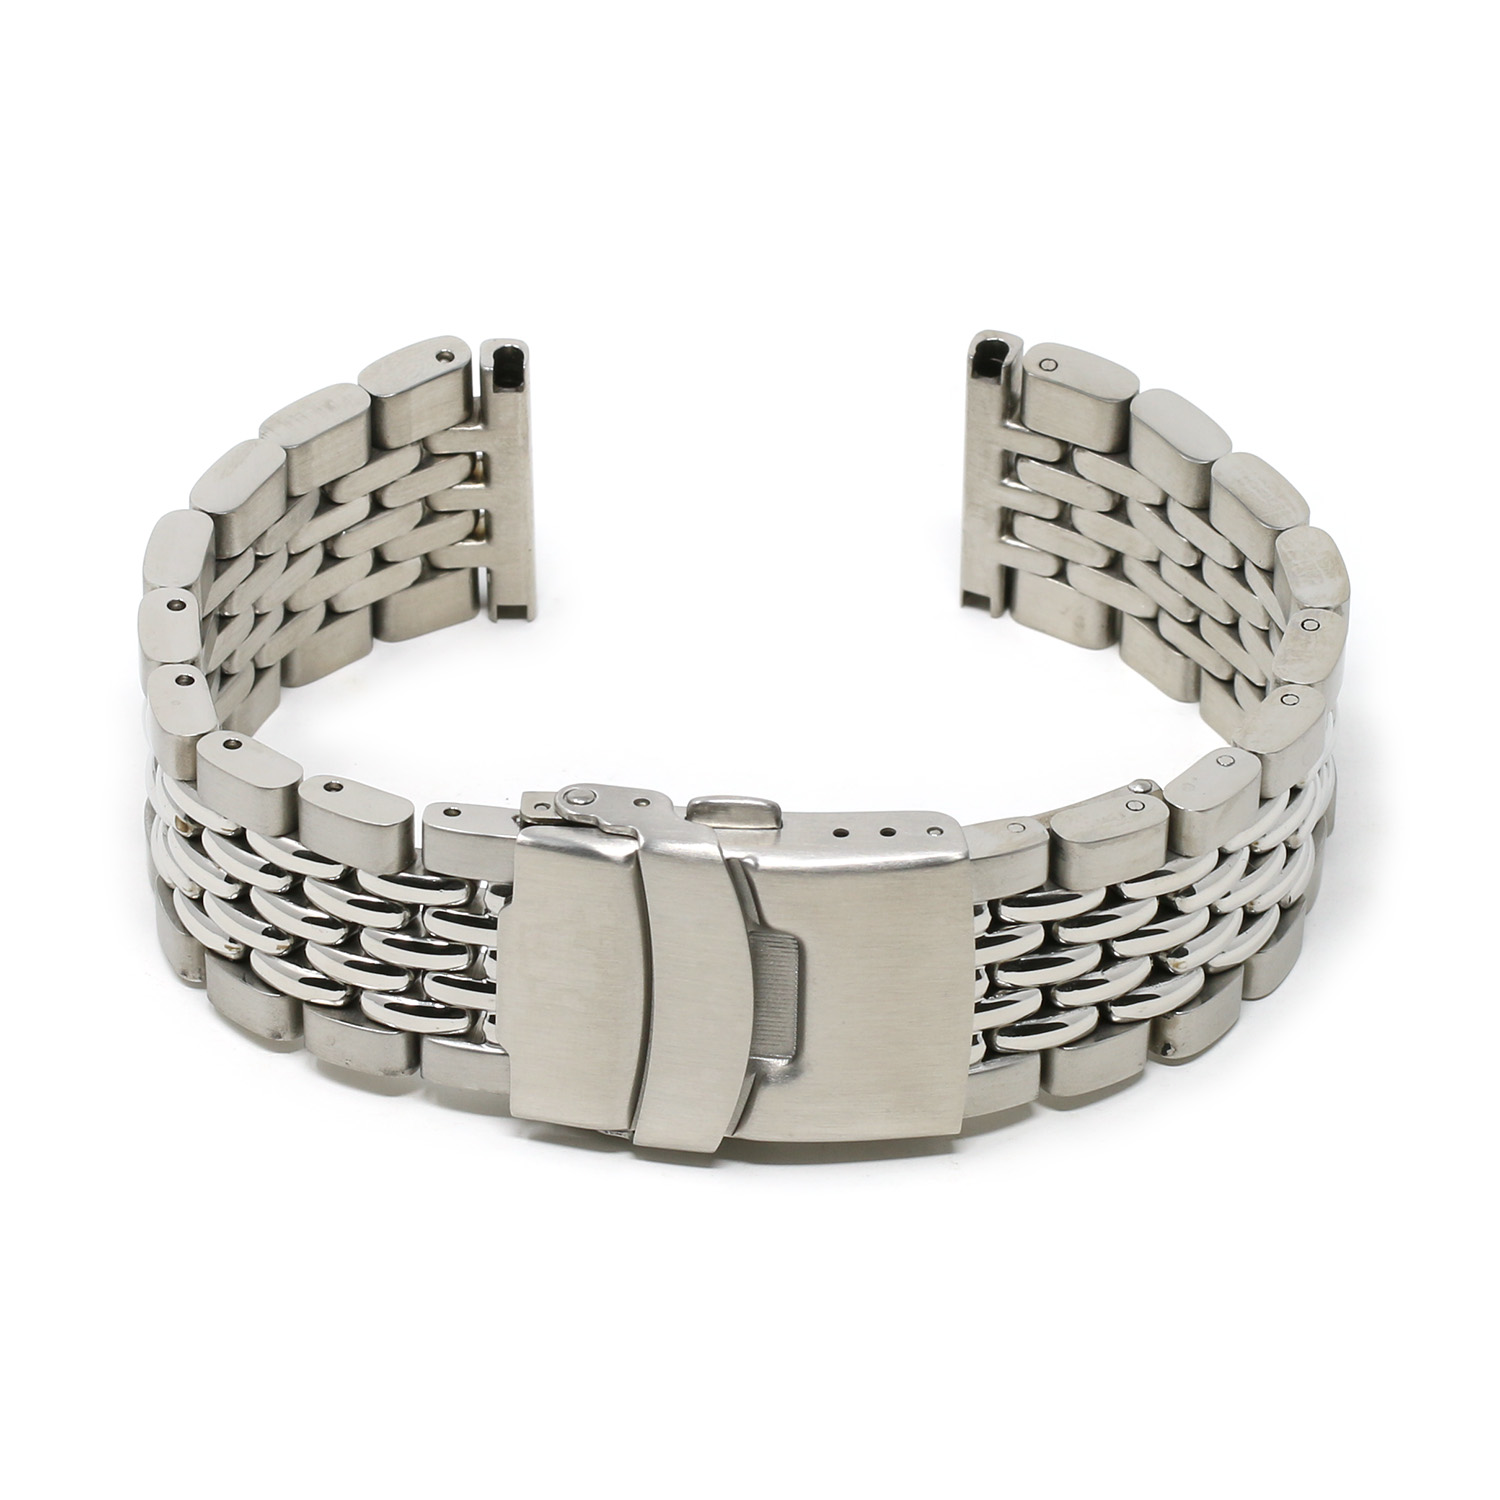 Beads of Rice Watch Band